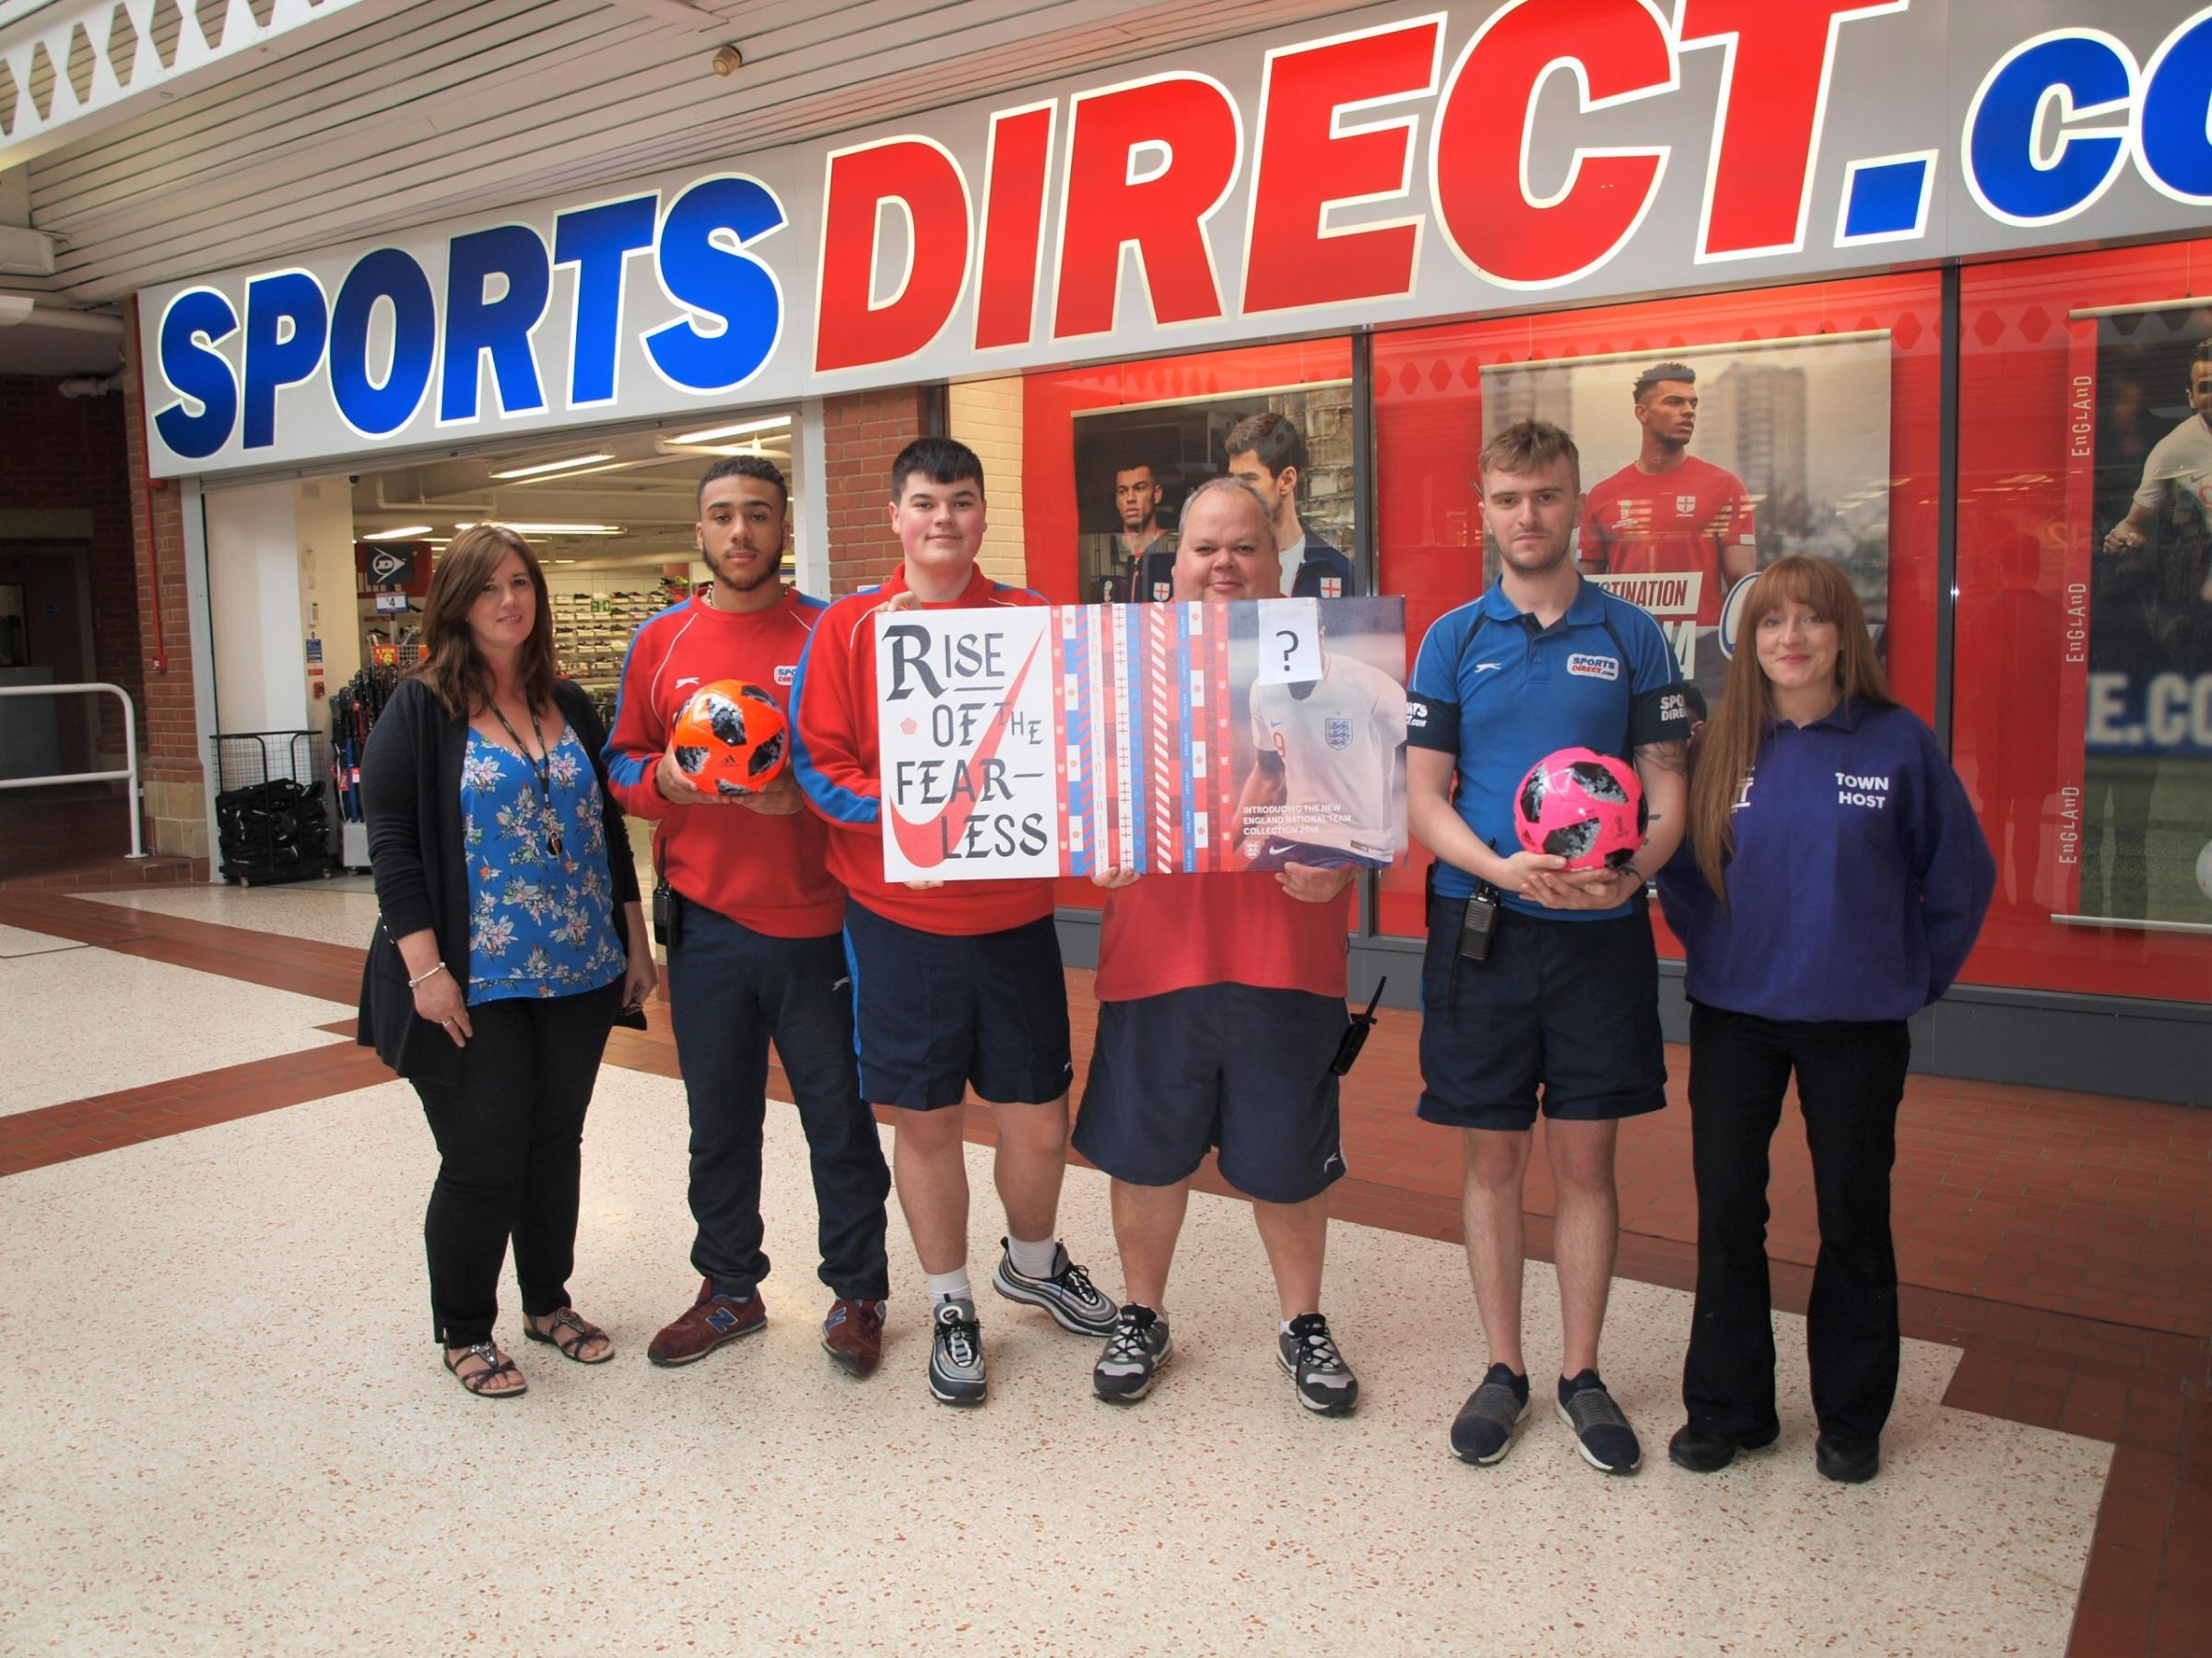 Sports Direct Staff at the store in Chippenham, Emery Gate